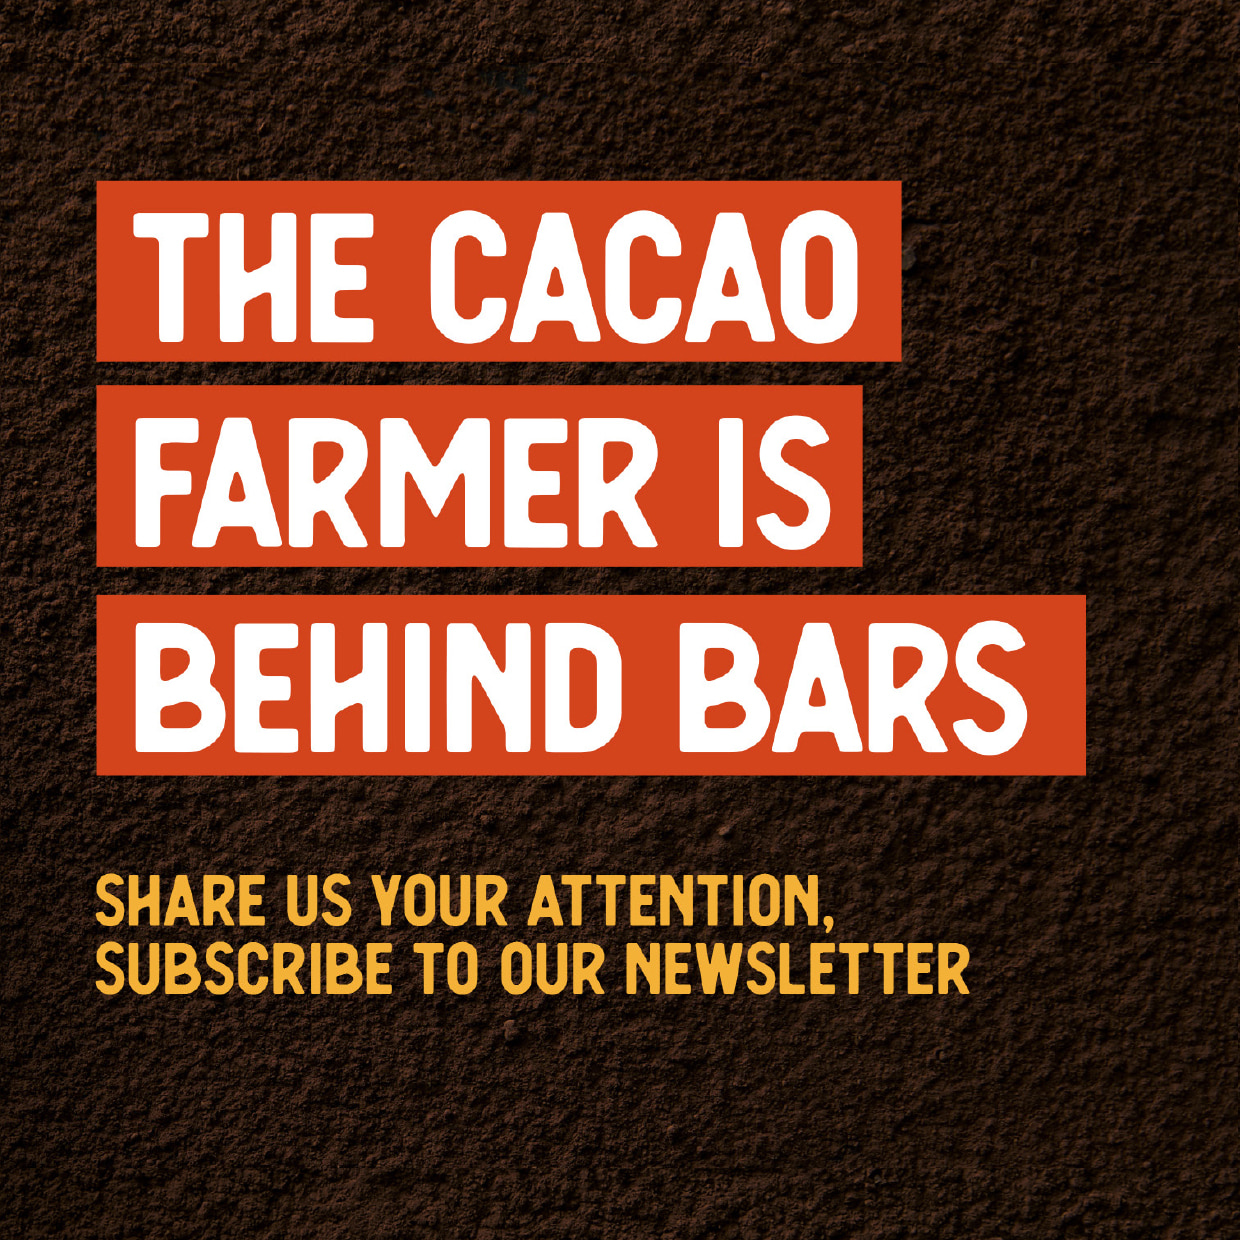 The Cacao Coalition Social Media Post